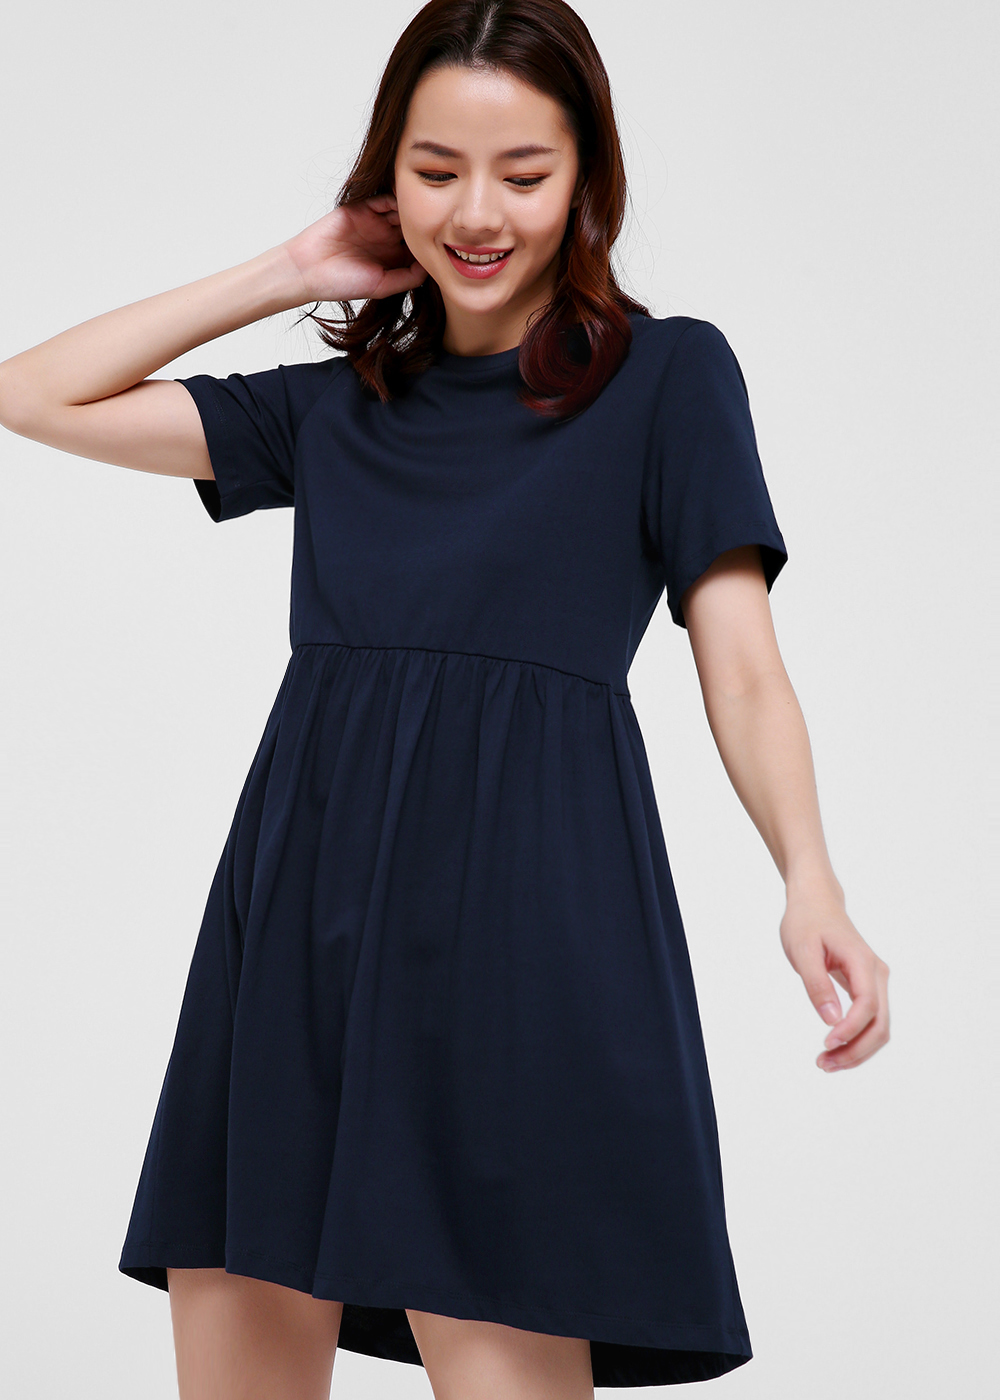 Bessie Babydoll Dress